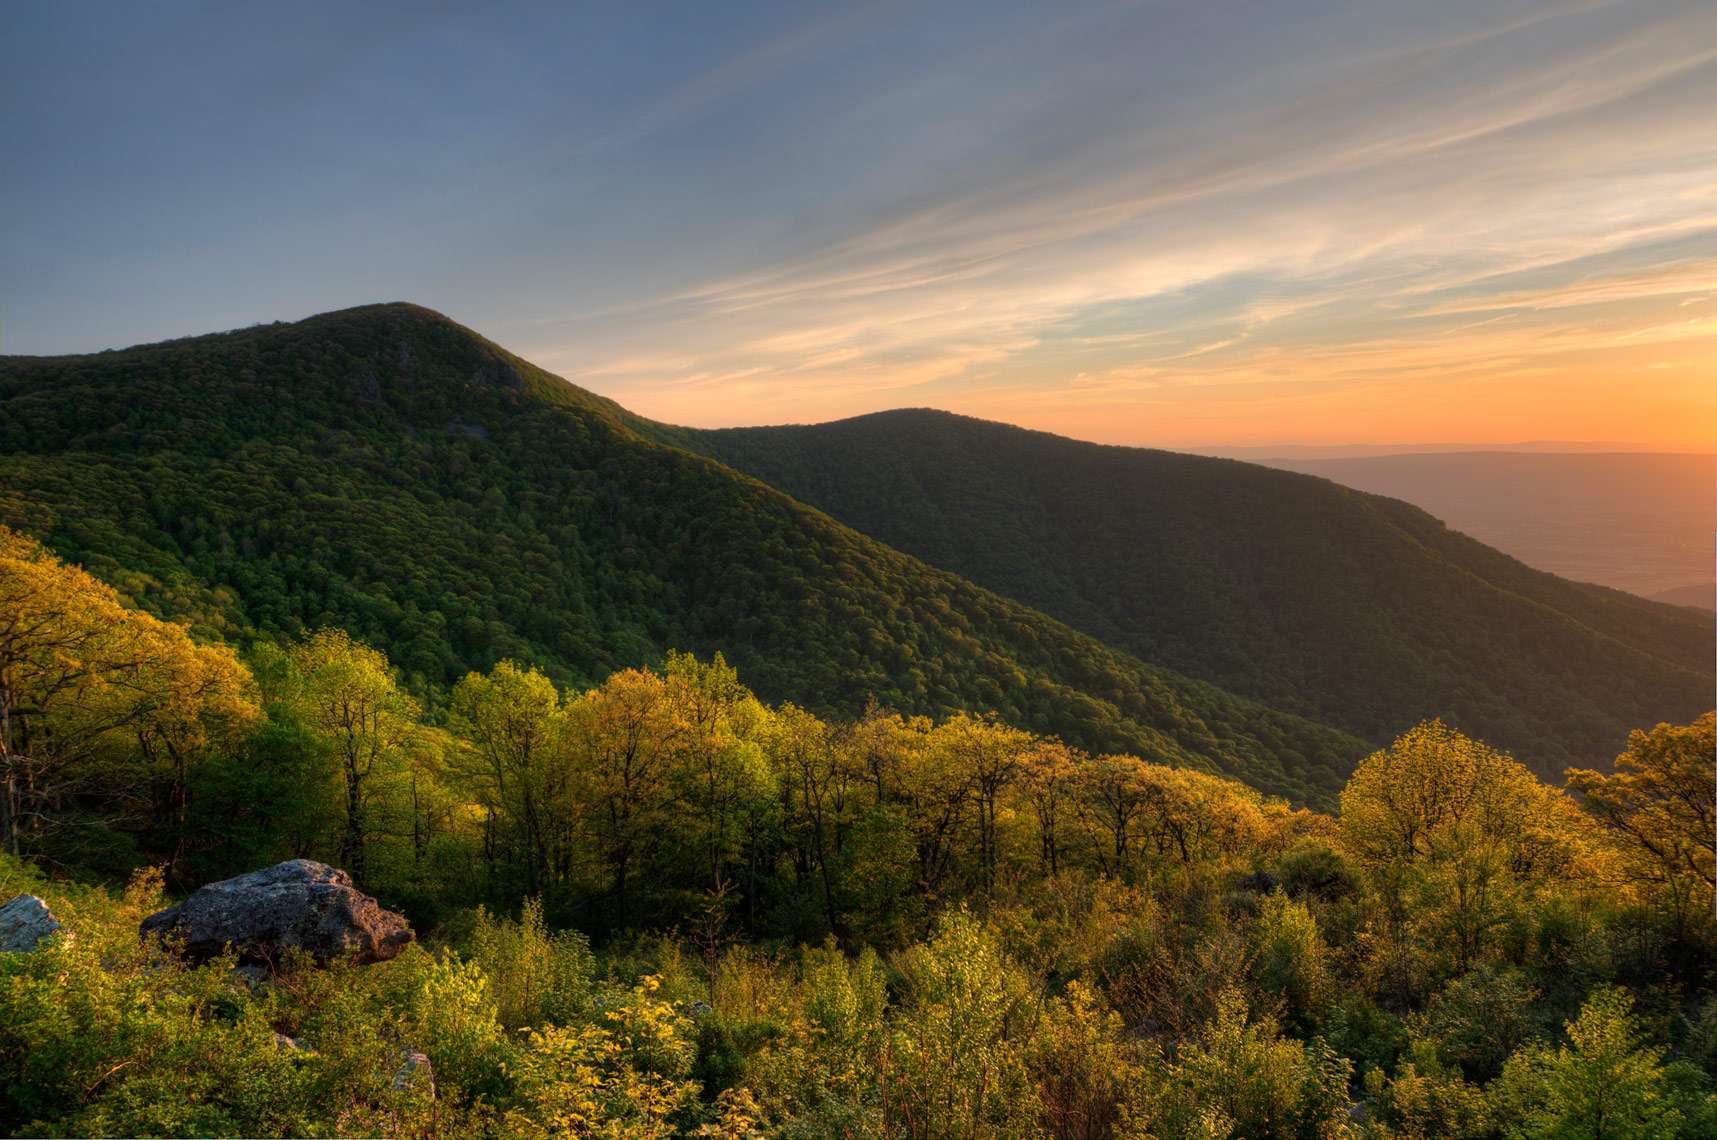 Hawksbill Summit at sunset, Shenandoah National Park, Virginia